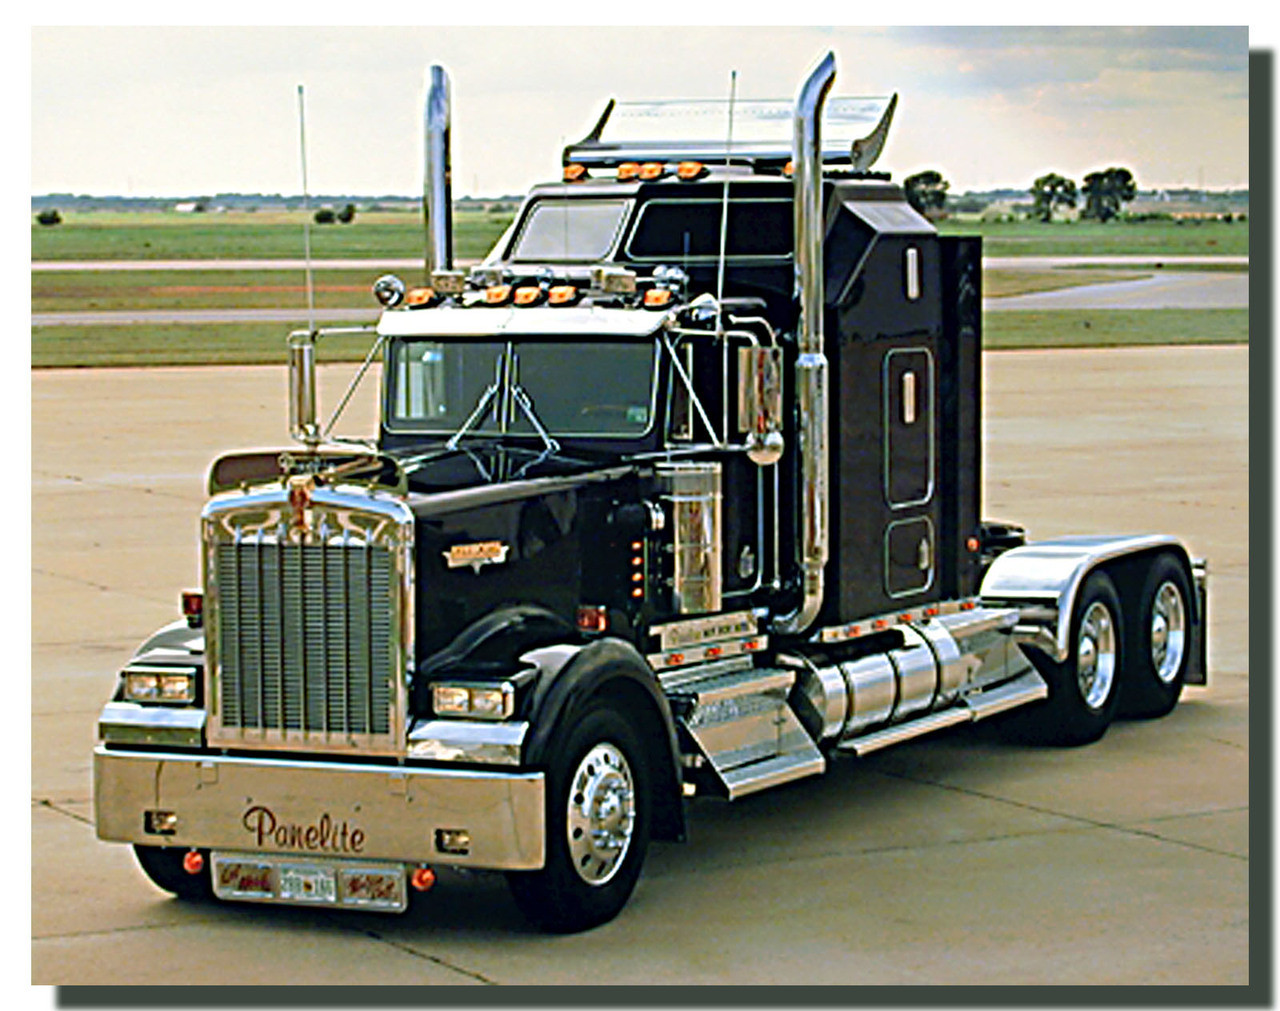 Reshaping The Dry Van New Laws New Tech And Pressure From Fleets Guiding Trailers Future besides Trailer Axle Width Chart takwBroSXtScti53r4iEcjlT9BJI6 Sw6o5Qkfz Lk0 furthermore Peterbilt Hauler Registered As 69881 furthermore Watch This Oblivious Semi Truck Driver Drag A Car Down The Highway moreover 4010hk Rear Tip Tracked Dumper. on semi tractor trailer weight